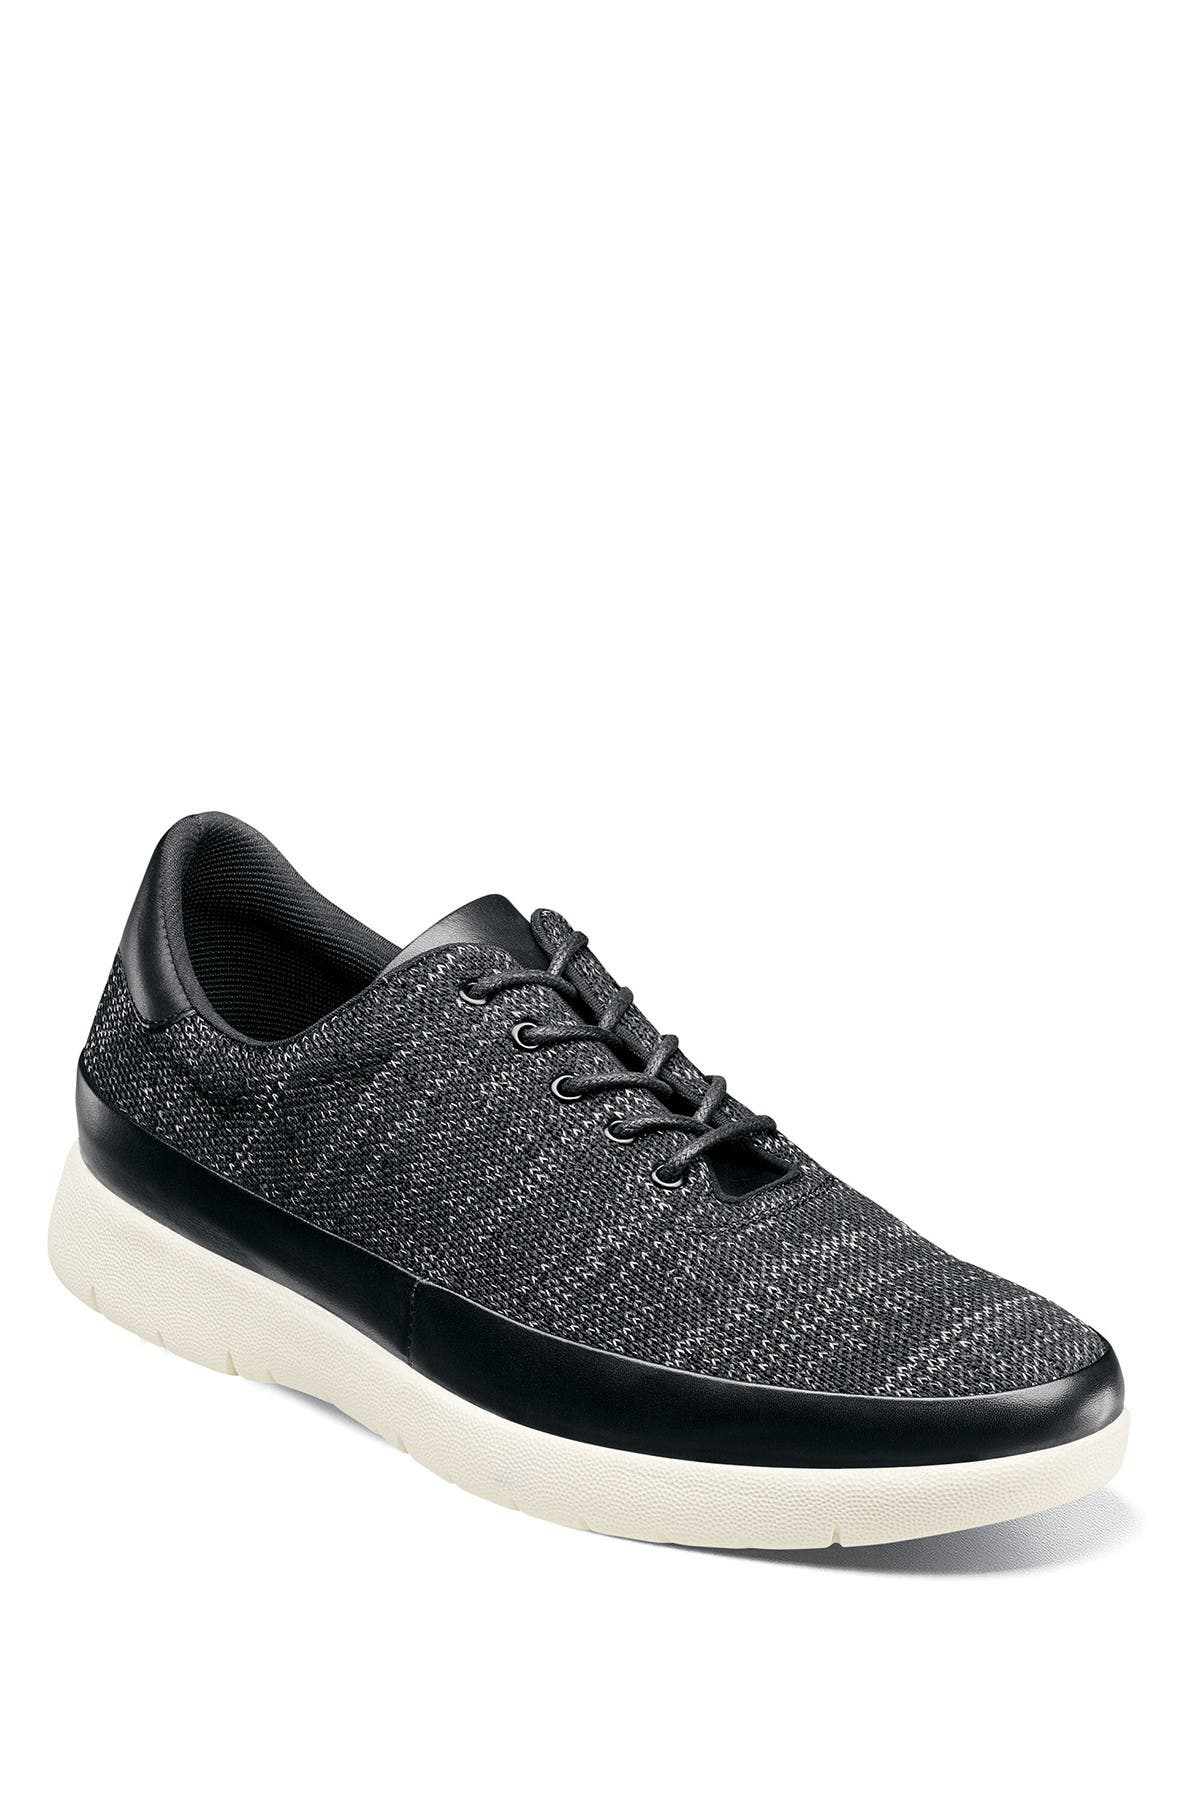 Image of Stacy Adams Hal Lace Up Sneaker